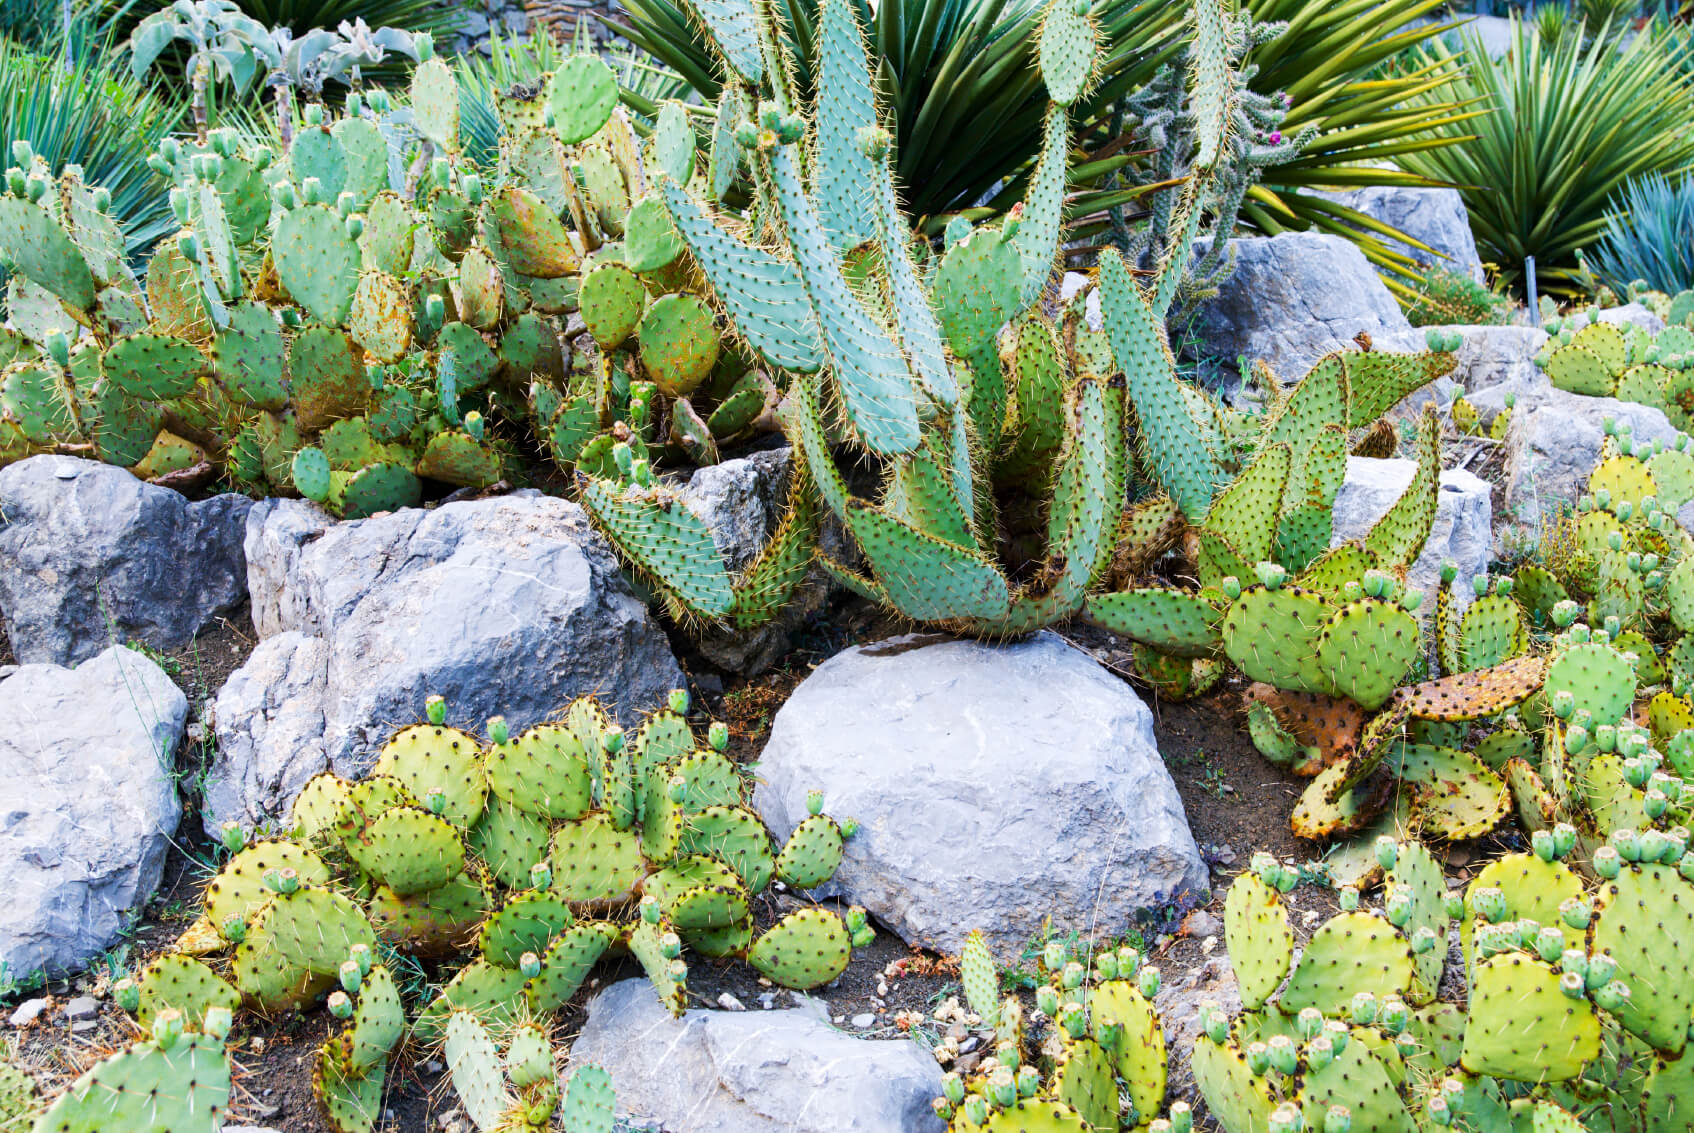 Planting a variety of cacti between stones and rocks gives an garden a wild and natural look. Your hard can look like the untamed wilds of the west.